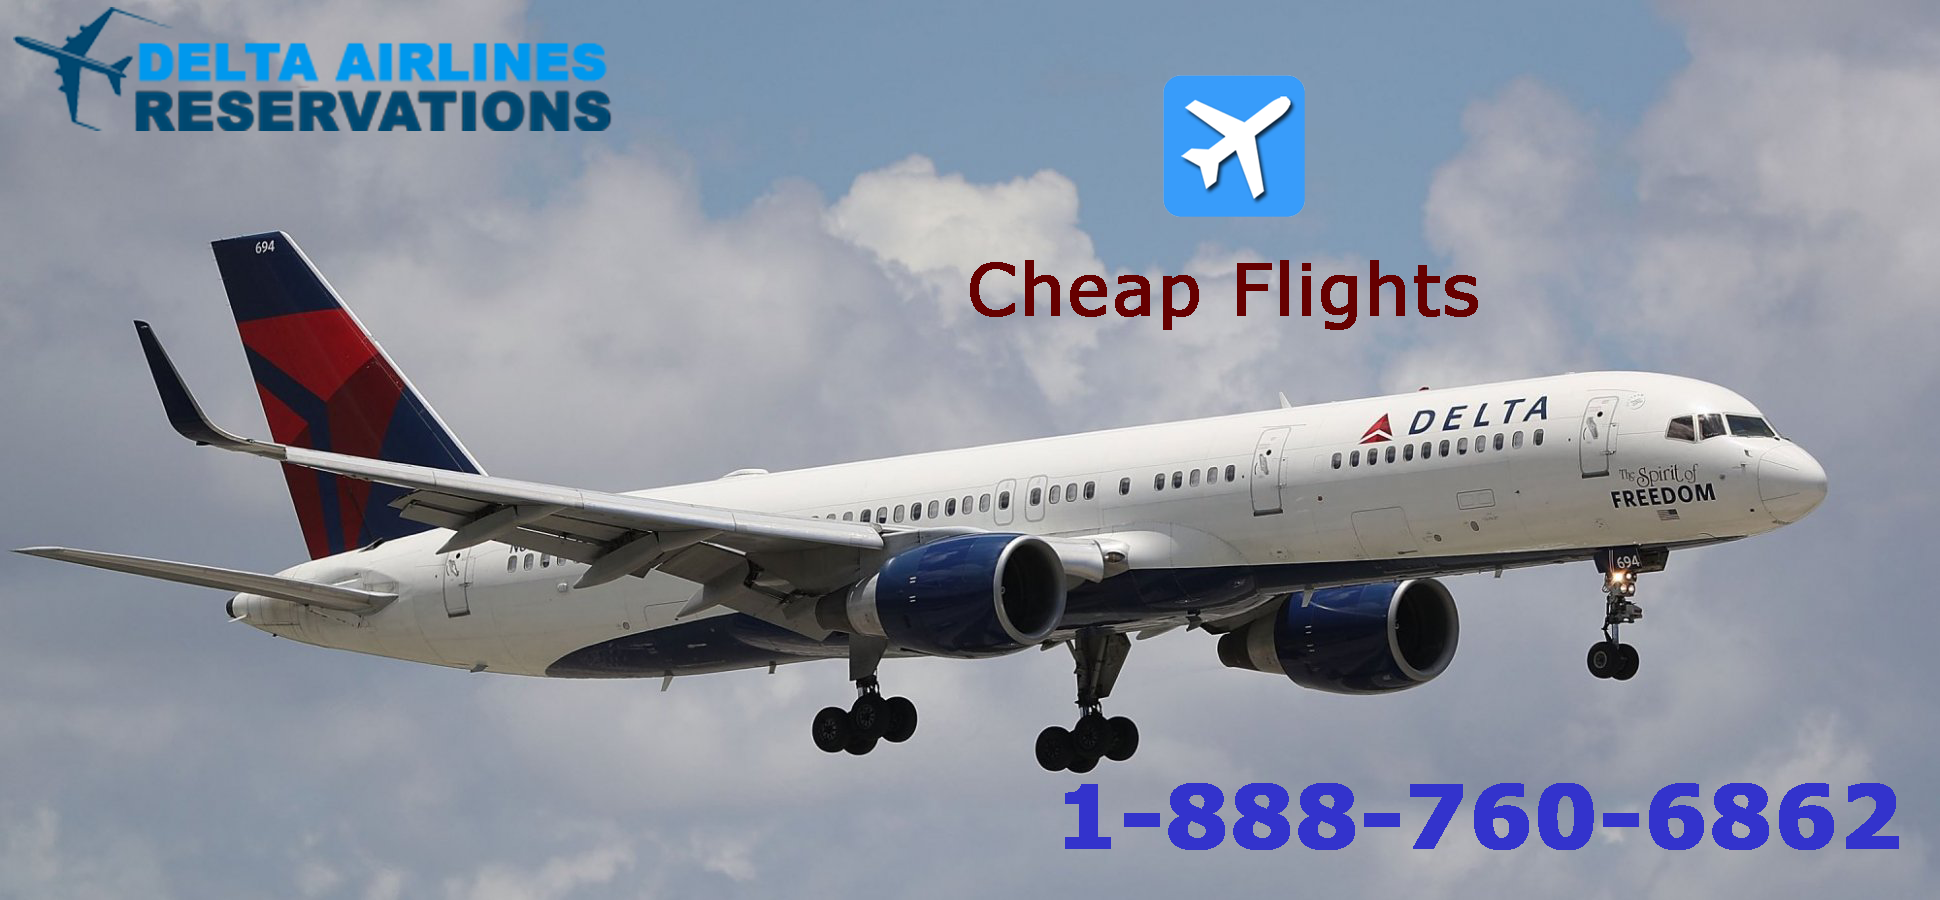 Airline tickets with Delta Air Lines